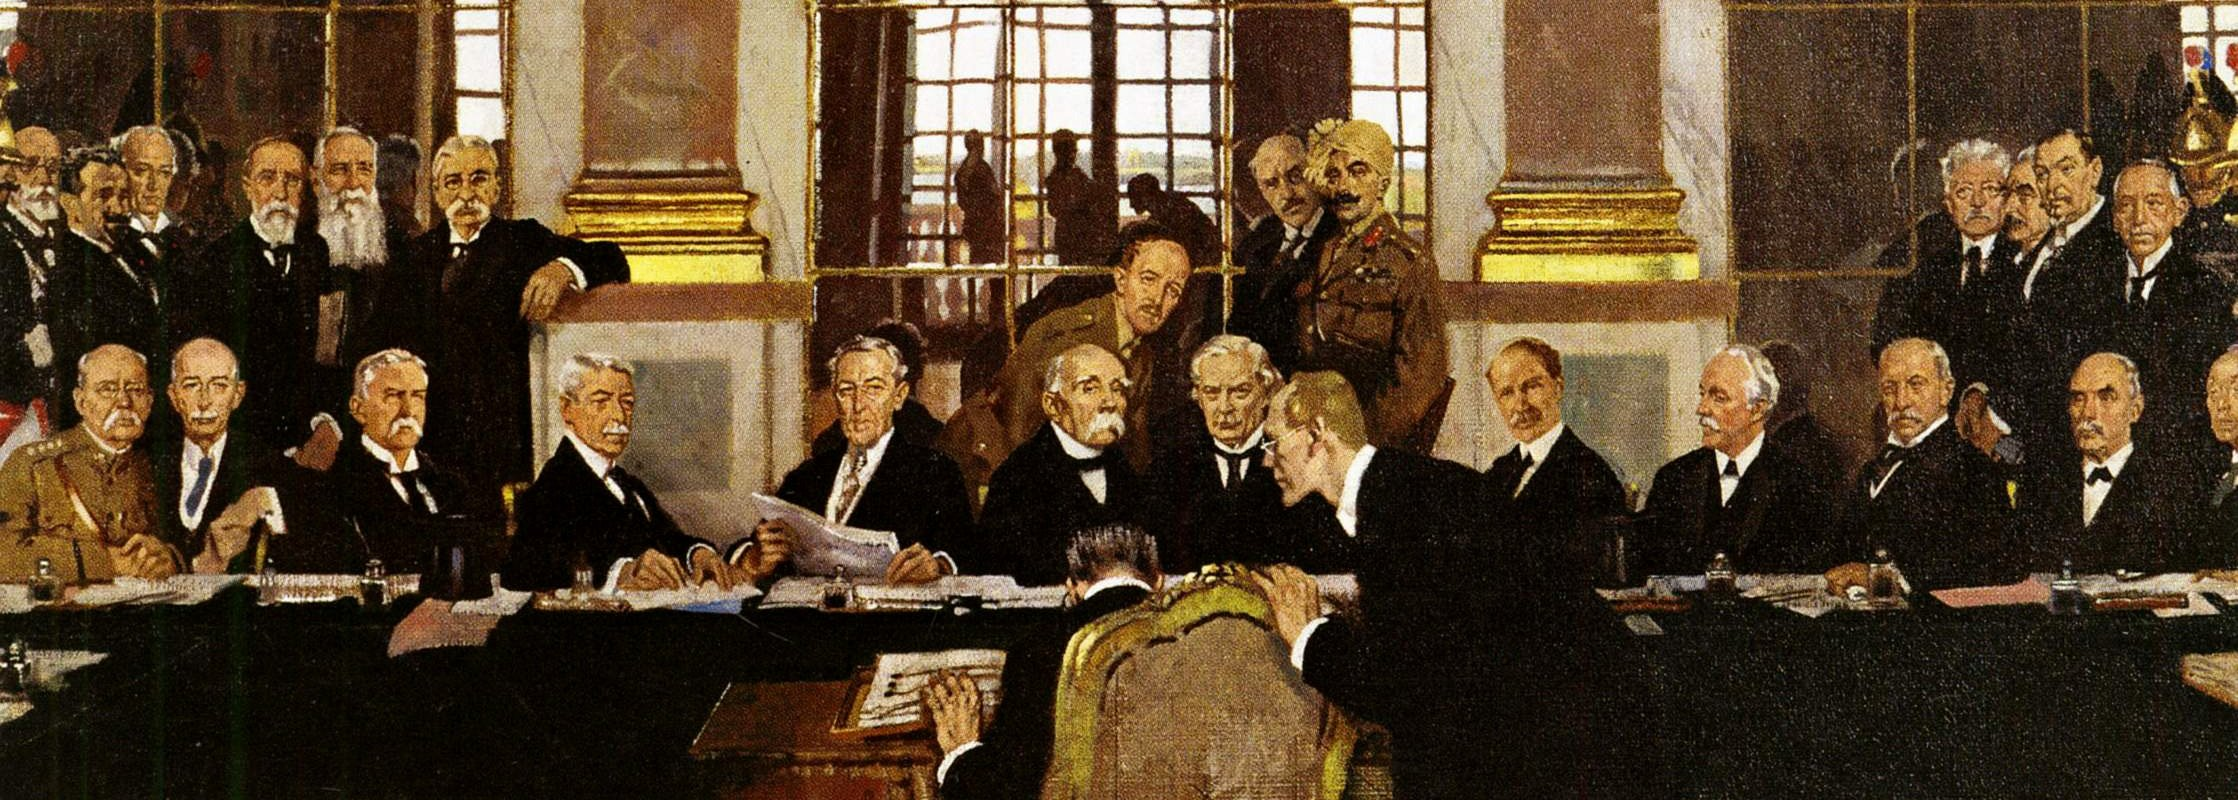 William_Orpen_%u2013_The_Signing_of_Peace_in_the_Hall_of_Mirrors,_Versailles_1919,_Ausschnitt